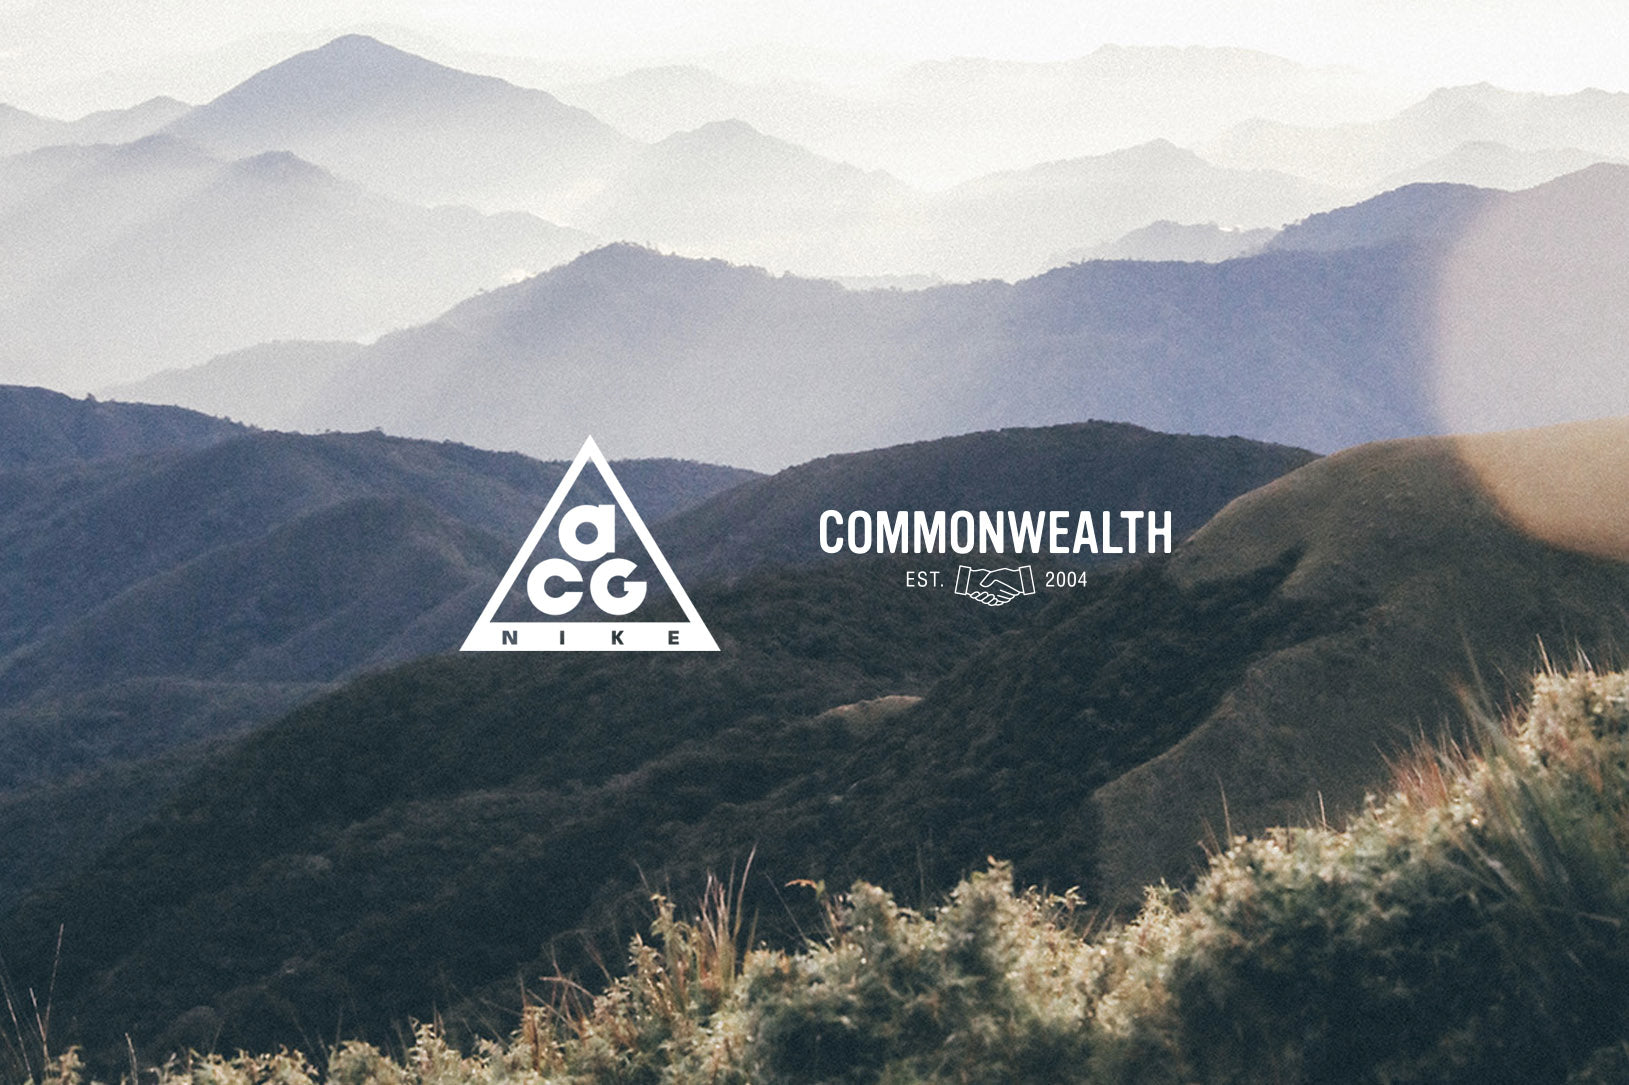 Commonwealth and Nike brings Nike All Conditions Gear to Mt. Pulag